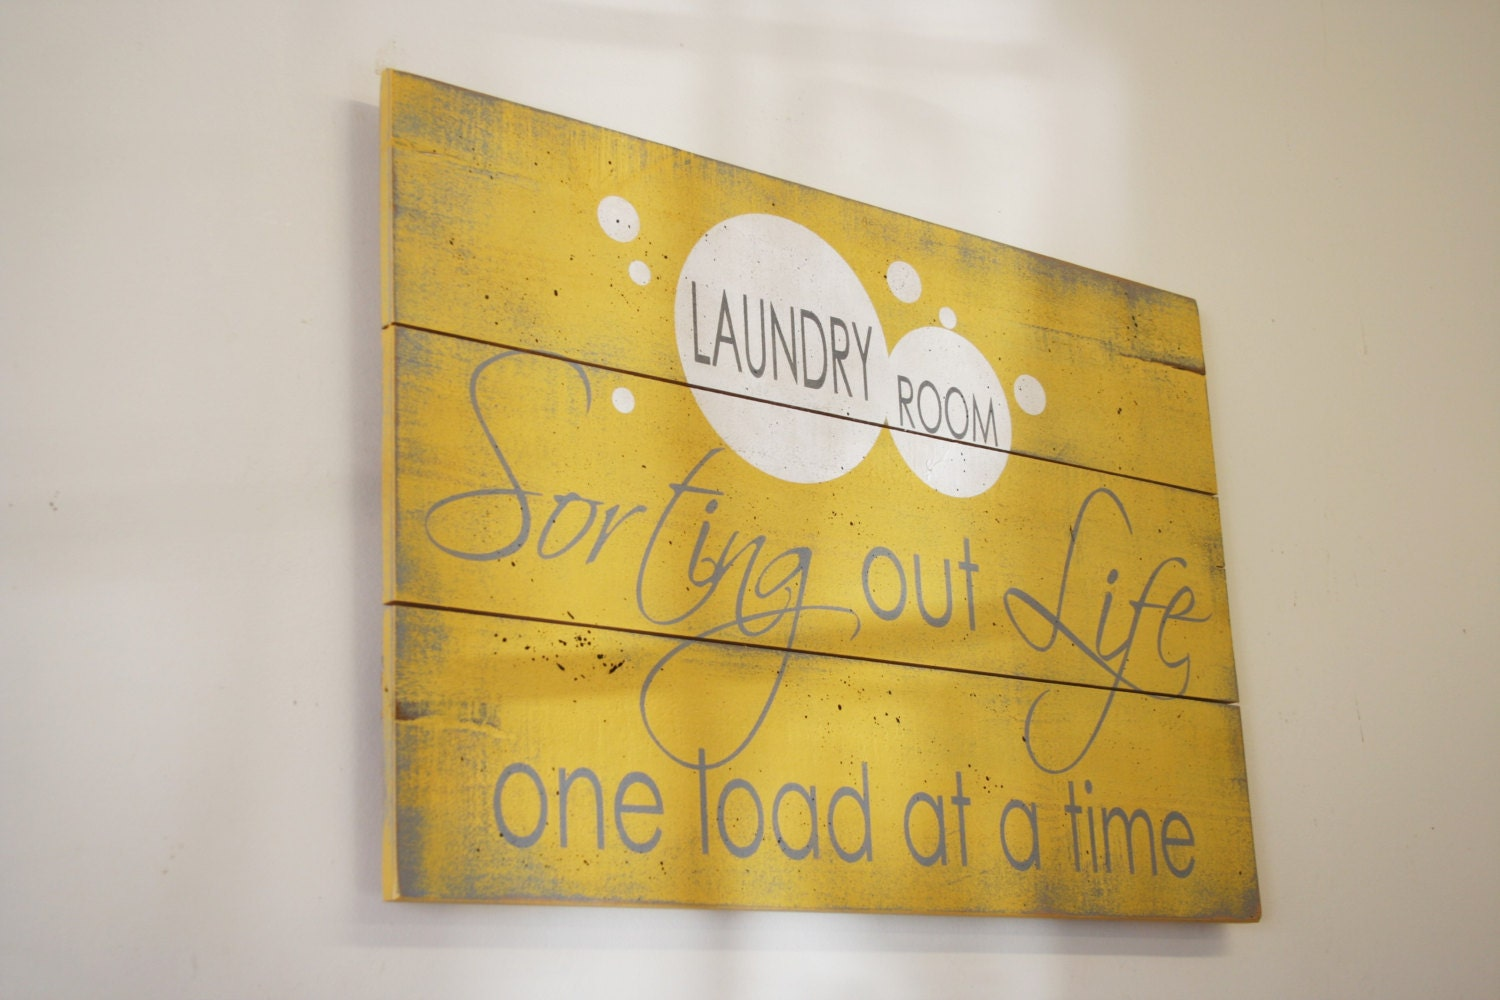 Laundry Room Wooden Signs Laundry Sign Wood Pallet Sign Laundry Room Decor Wood Sign